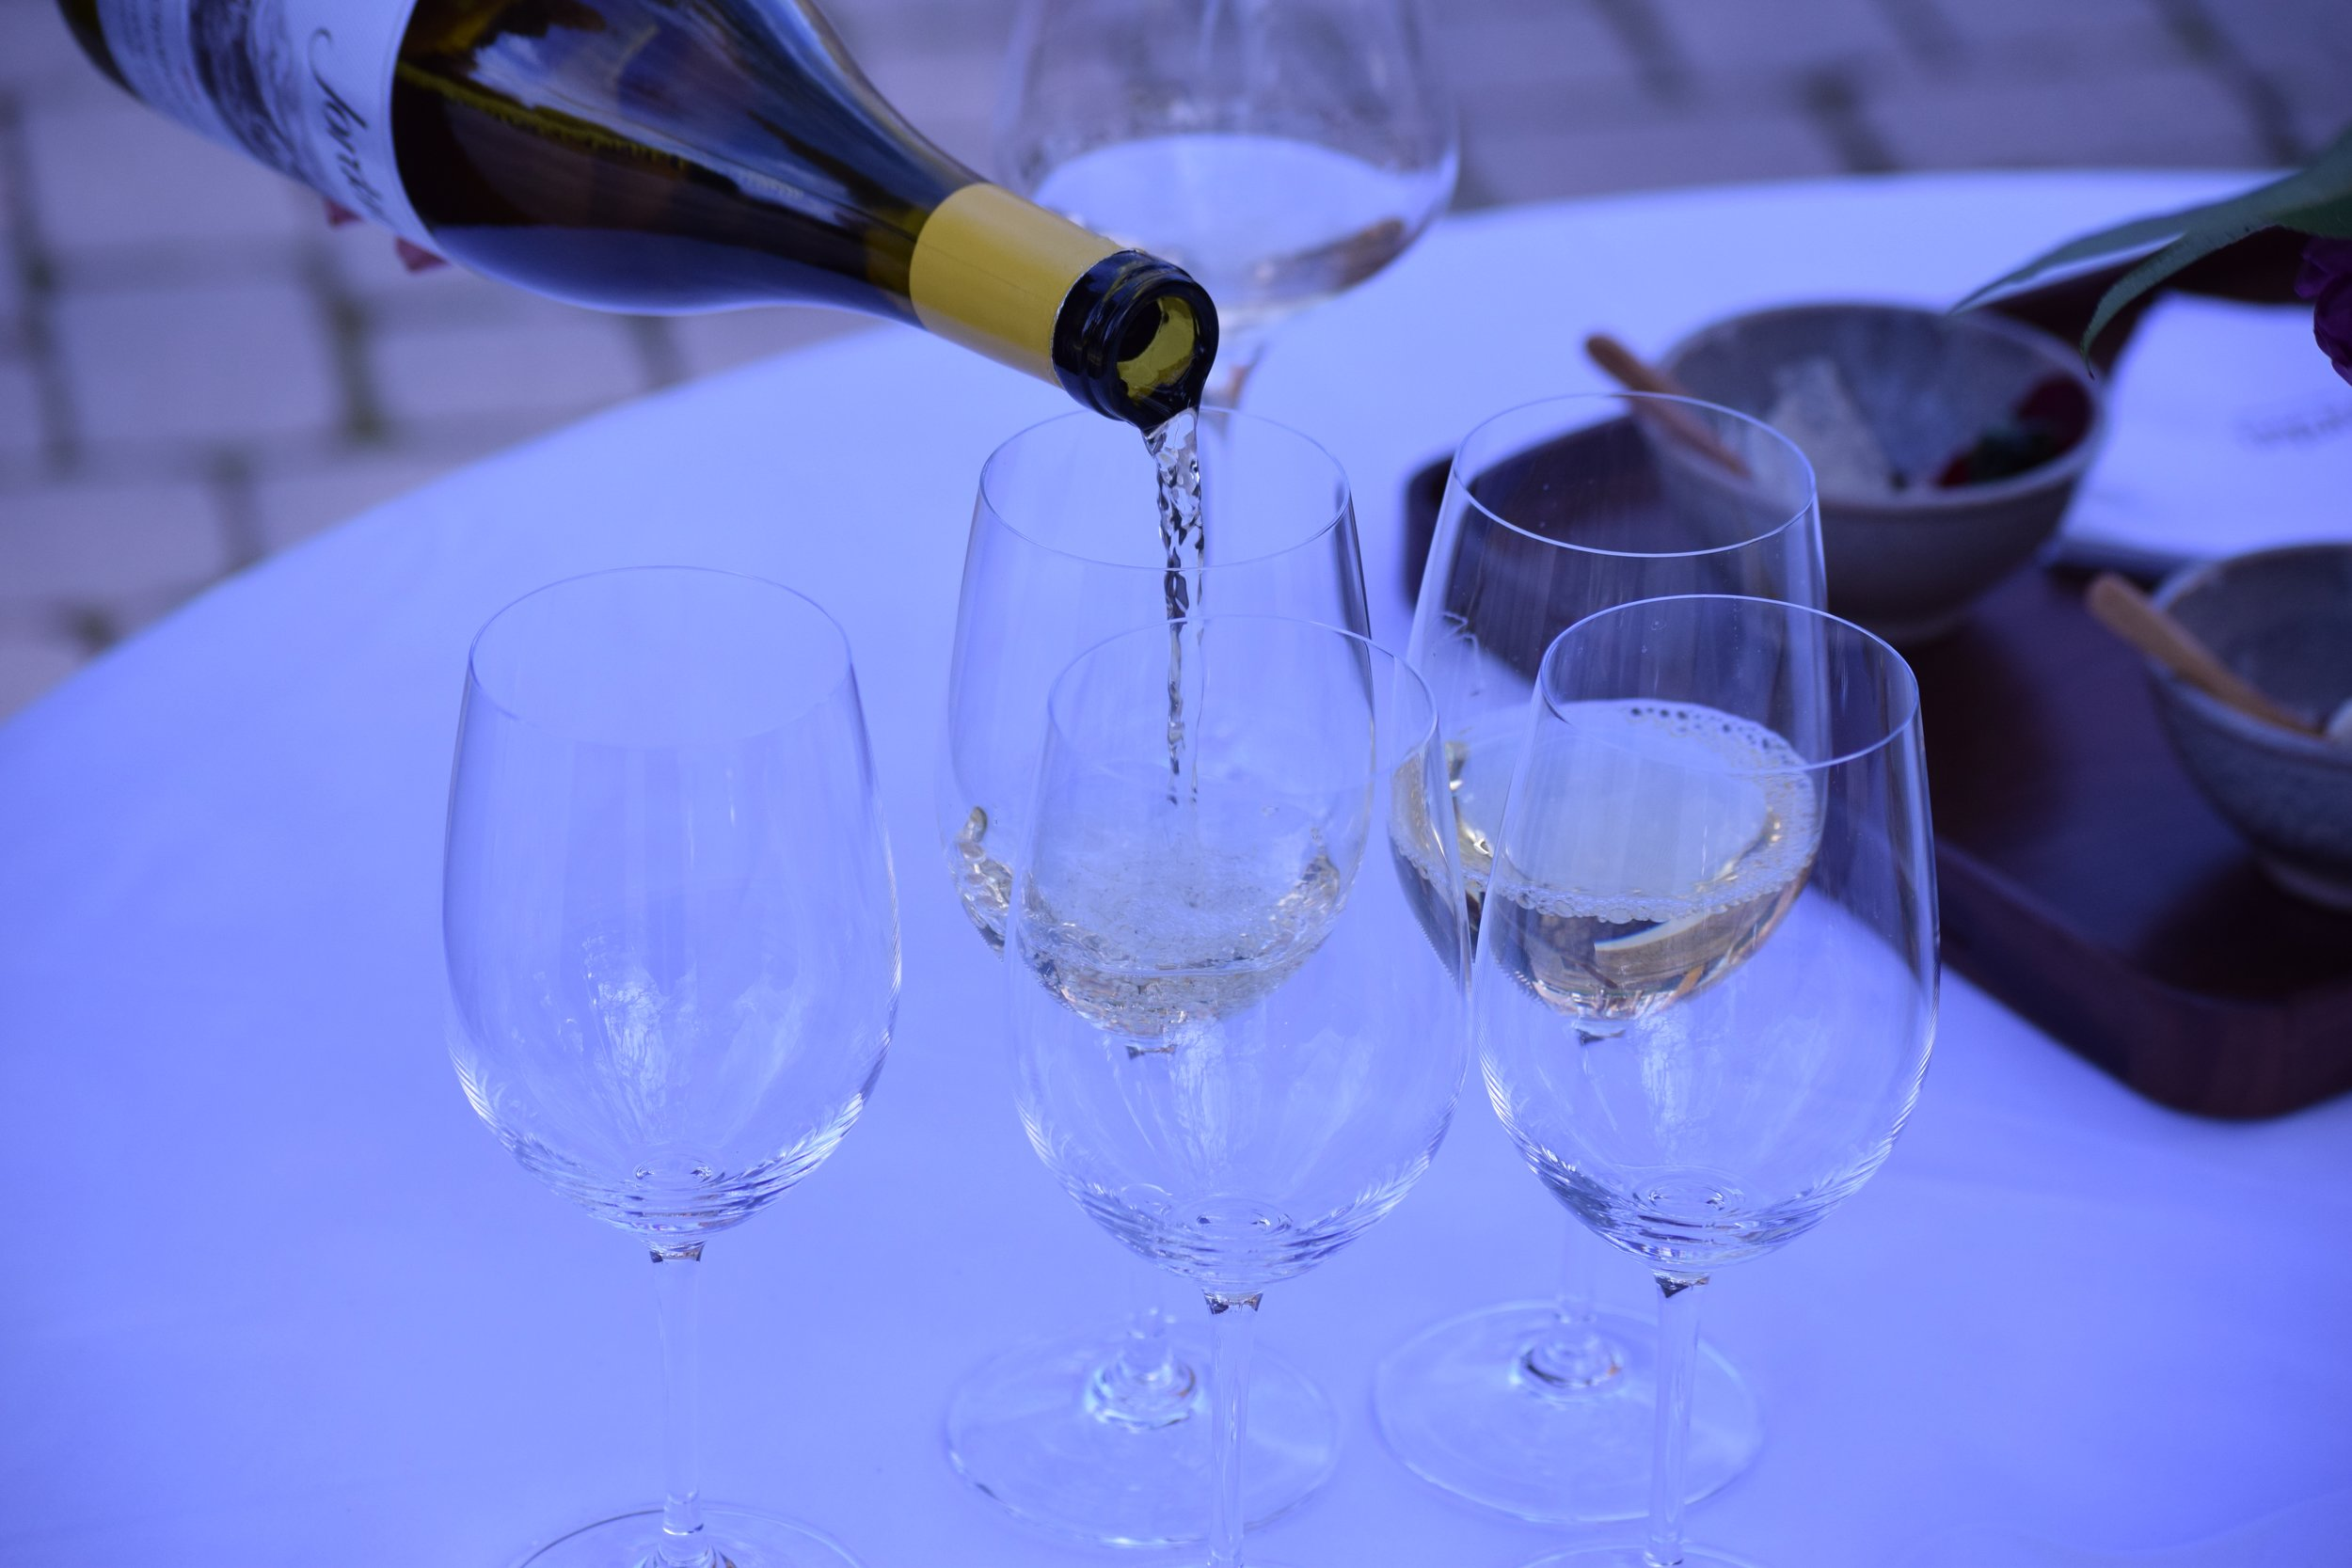 The 2014 Jordan Chardonnay from The Russian River Valley being poured. Photo by Gabriel Manzo.